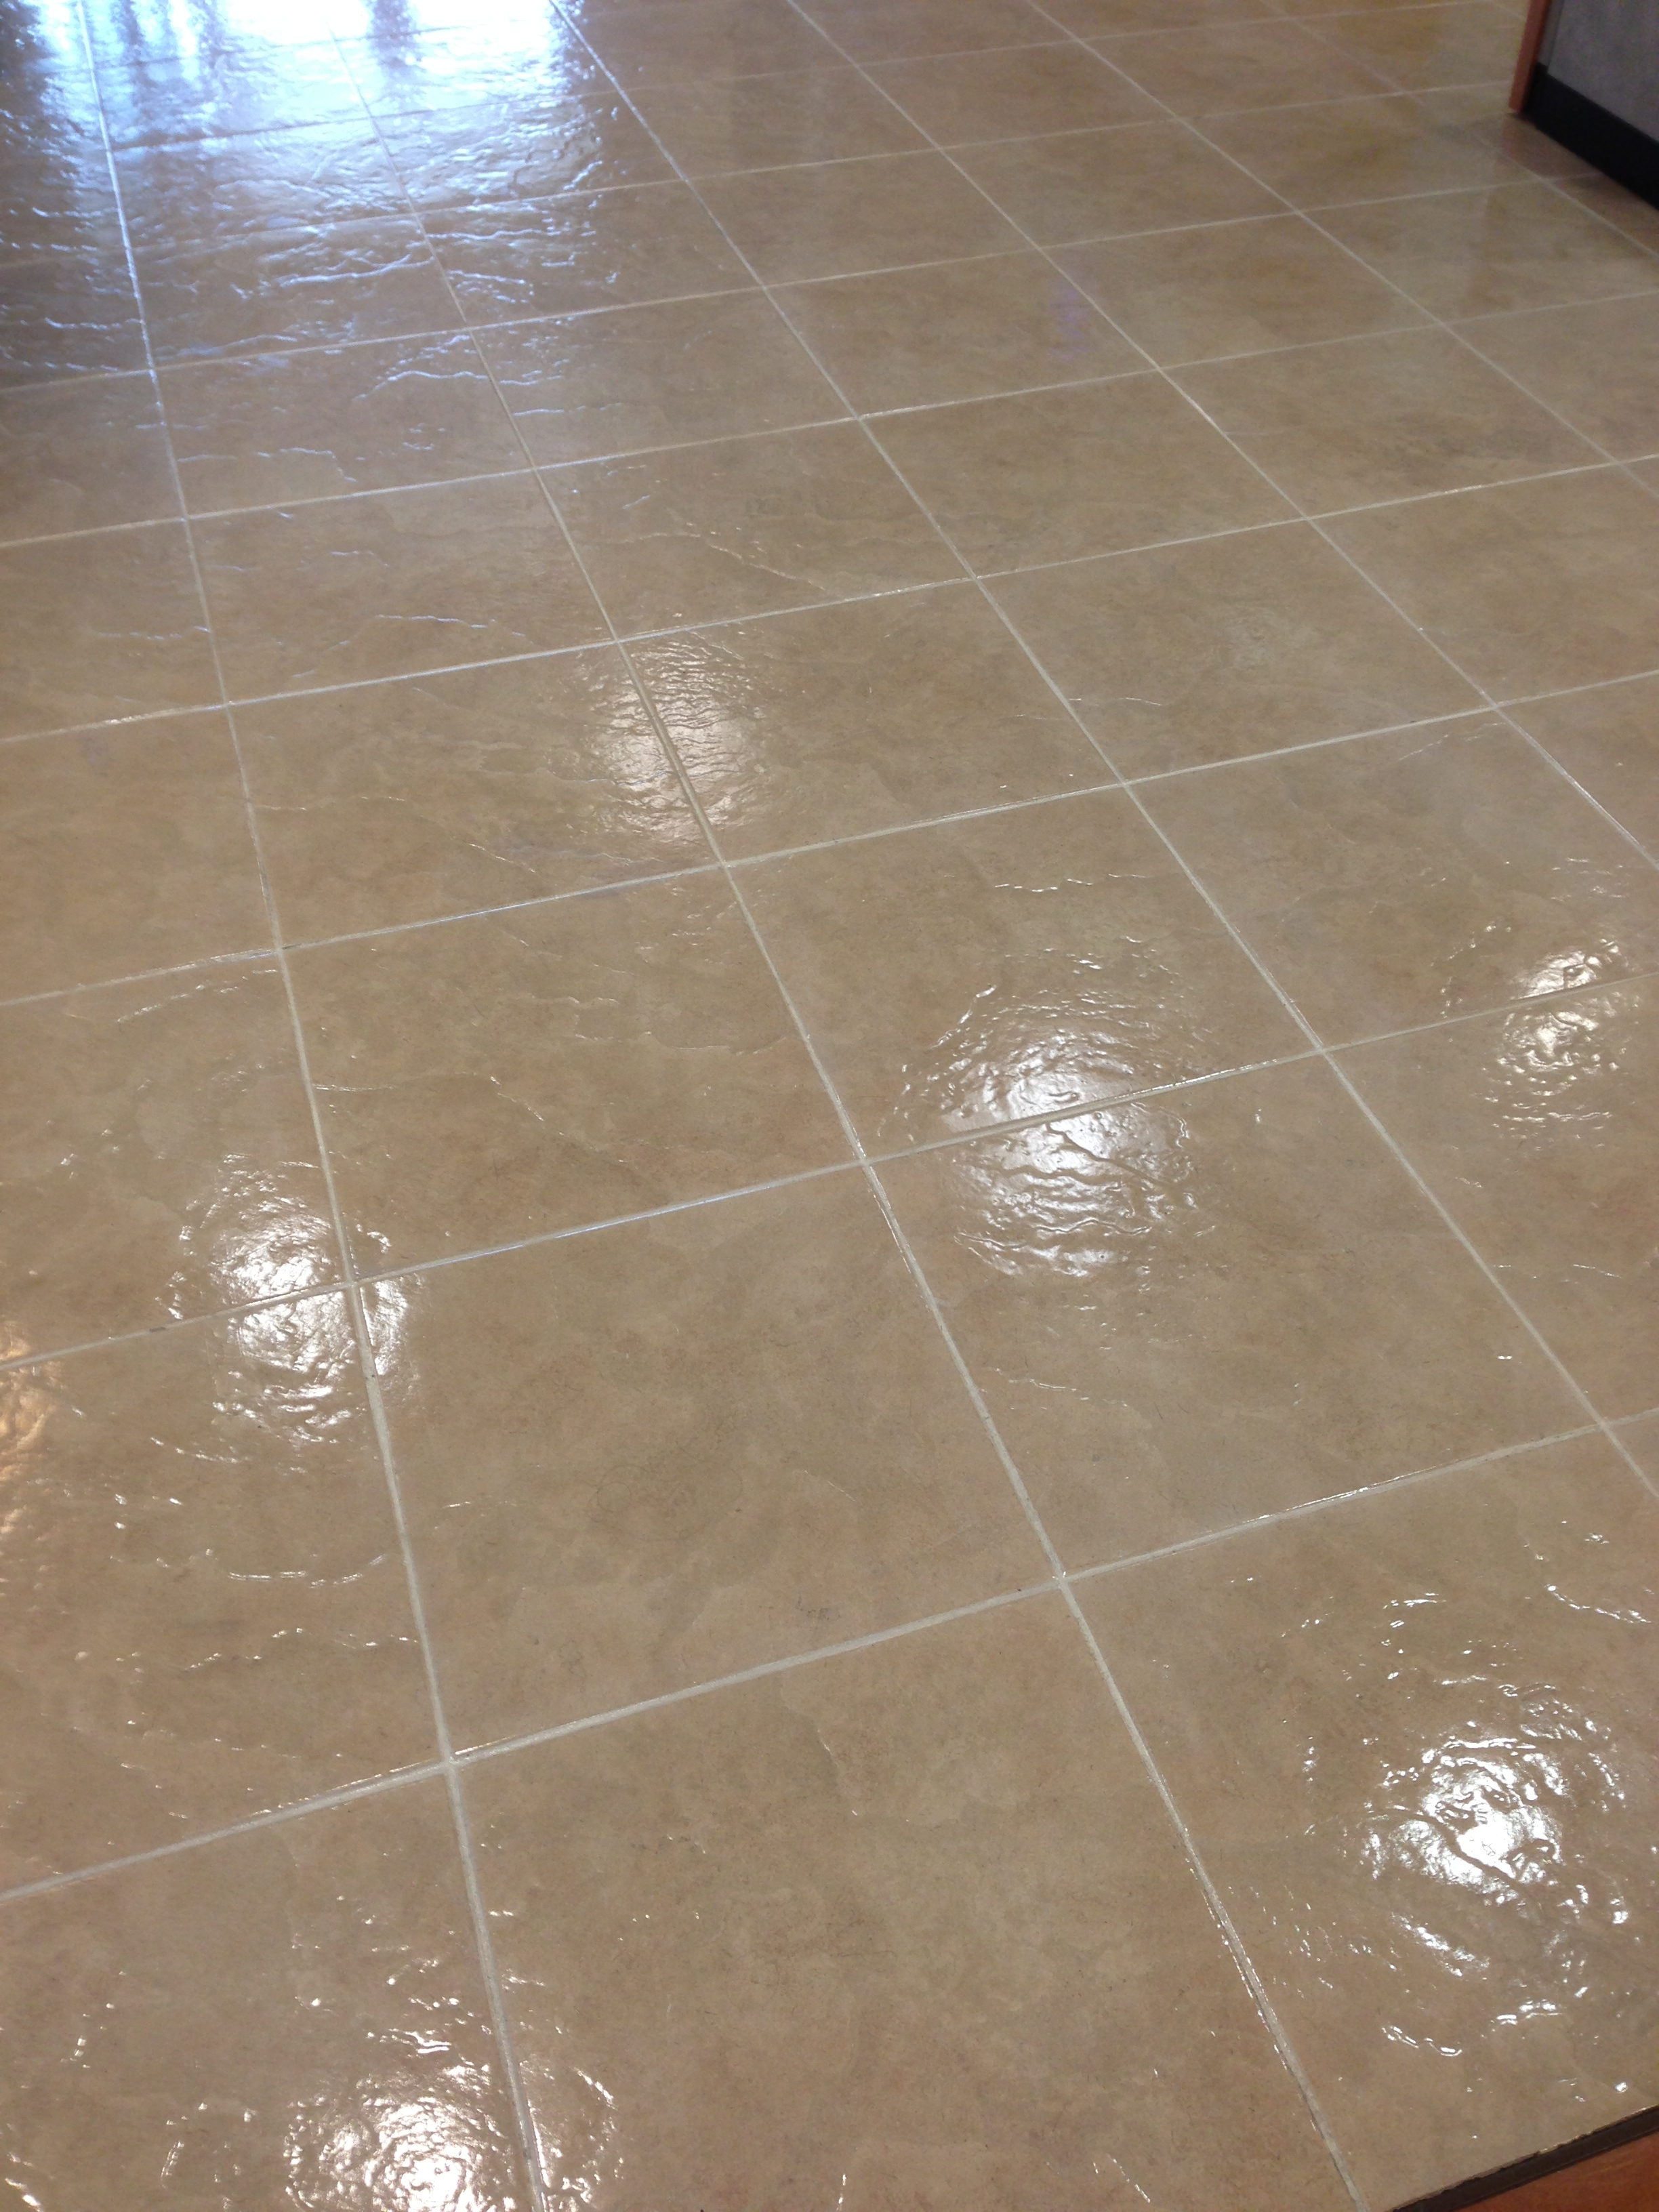 Sealing Grout Lines in Hotel Lobby | National Sealing